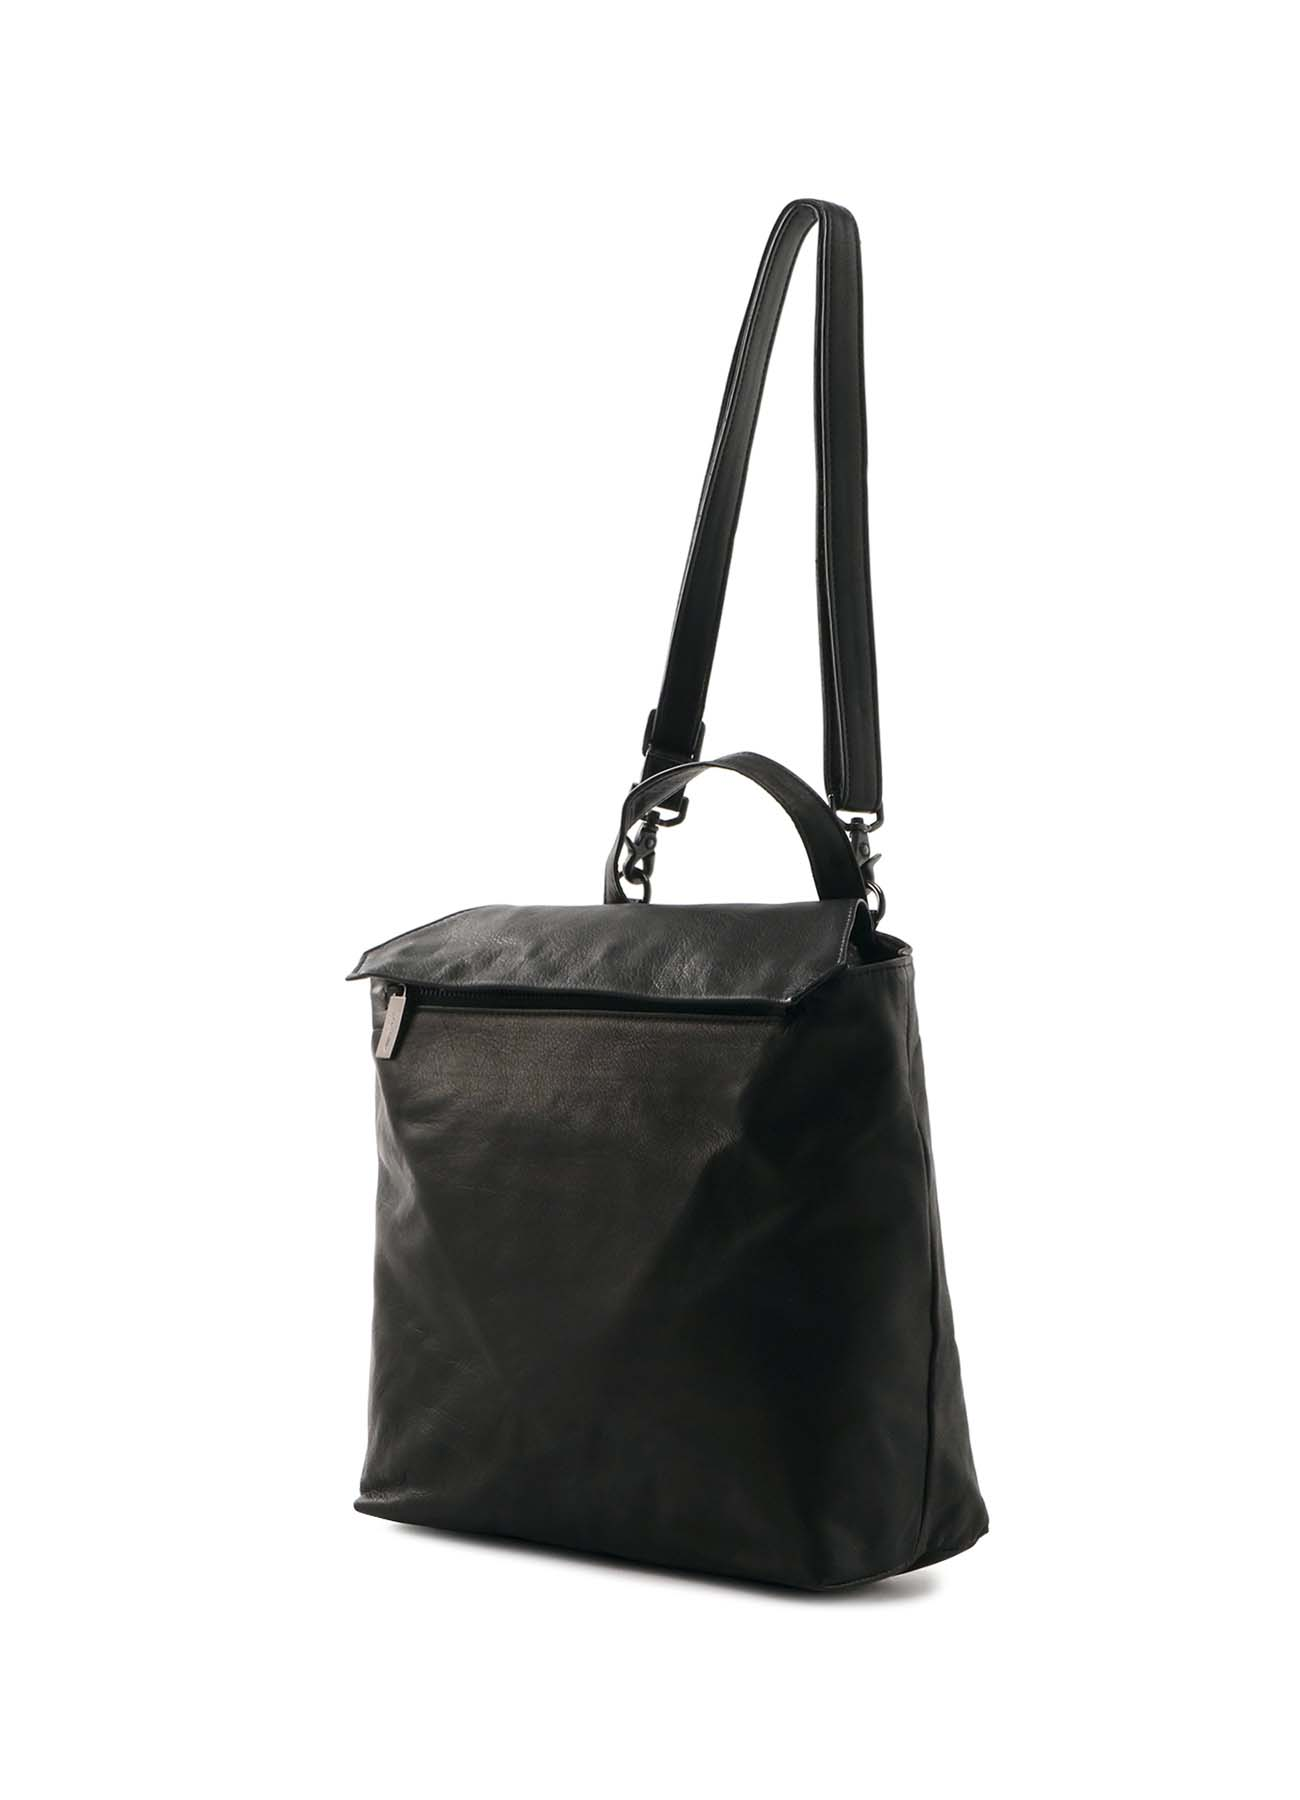 GARMENT LEATHER DRAPED SHOULDER BAG